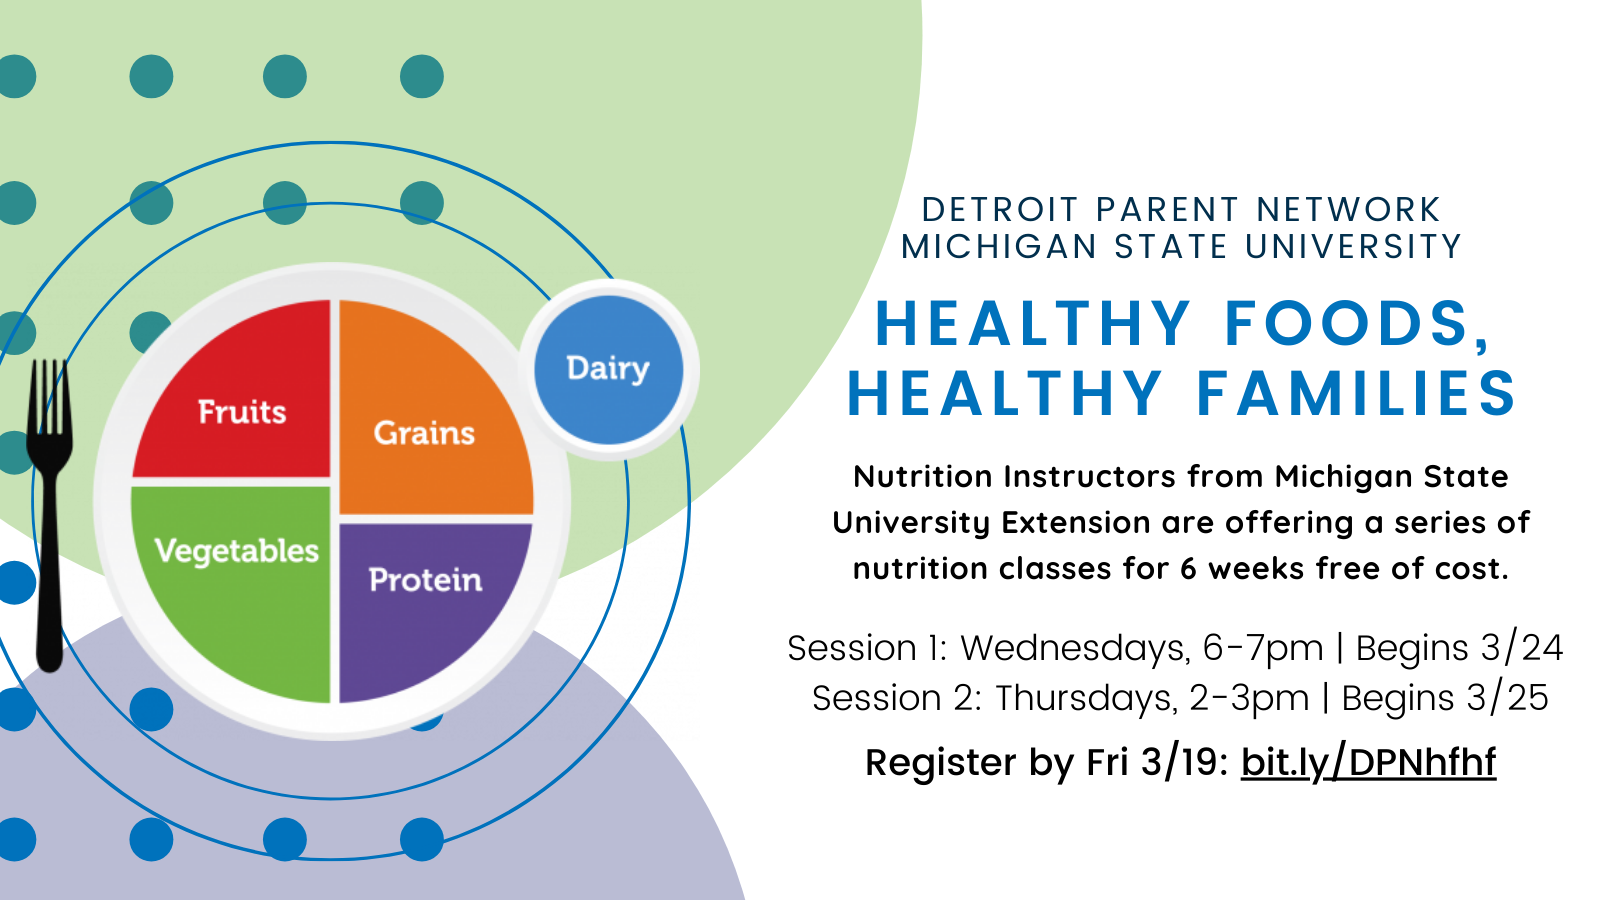 Healthy Foods, Healthy Families